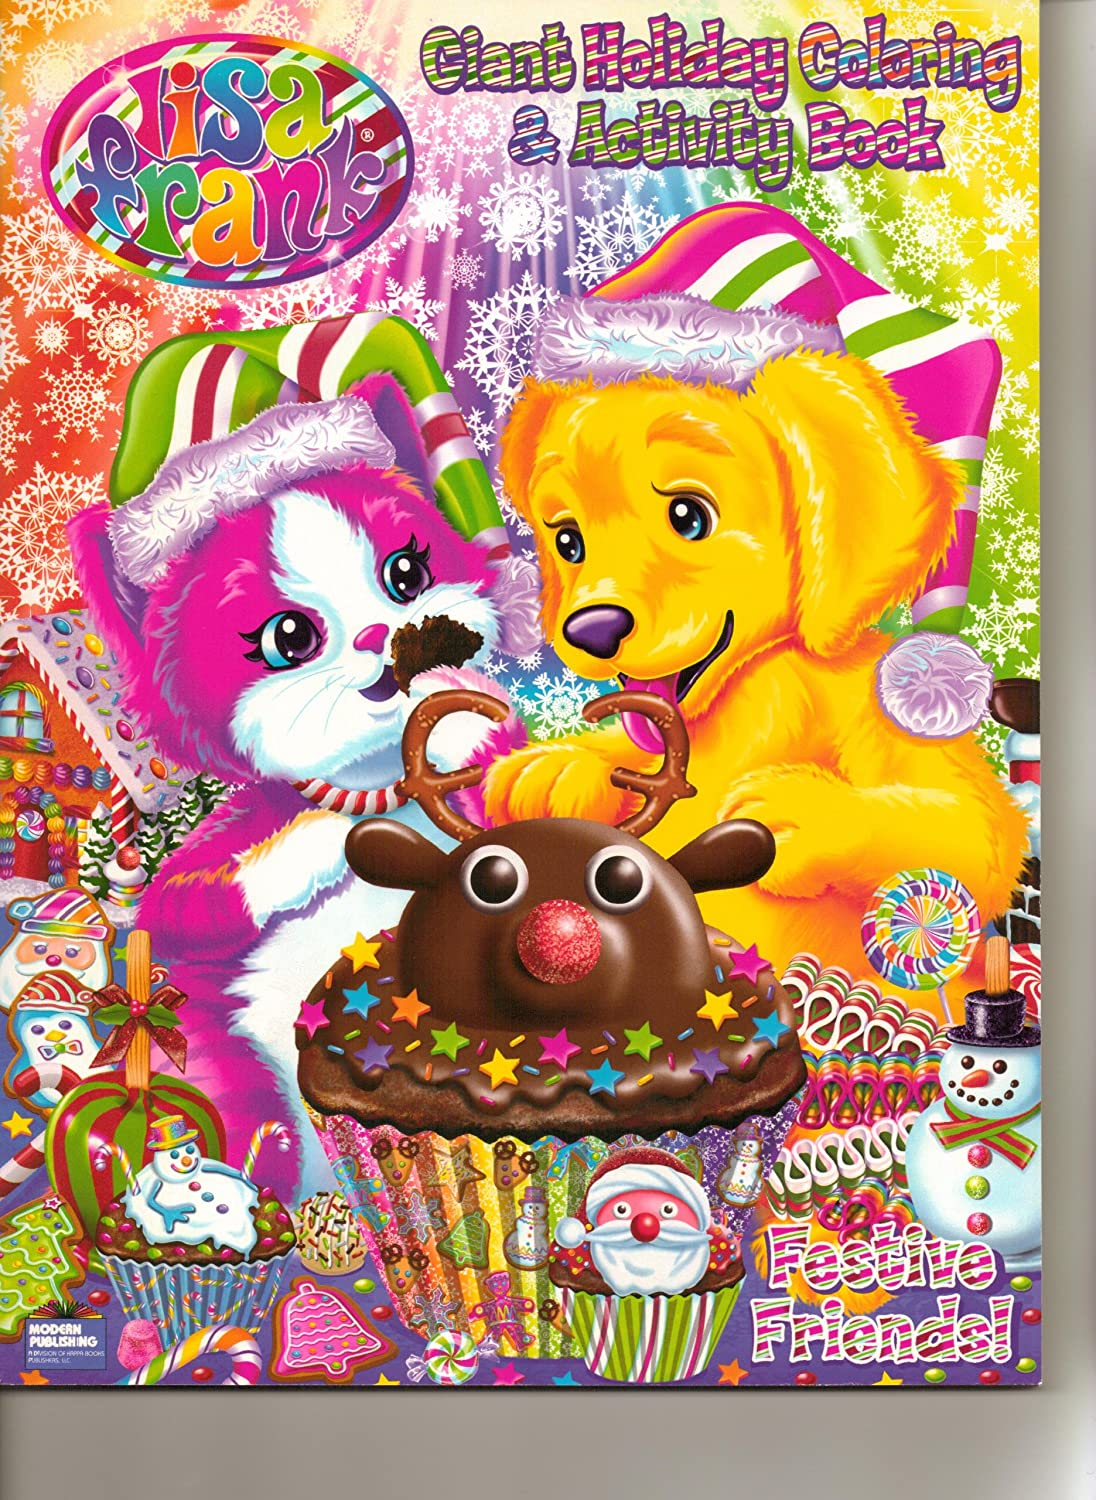 Amazon Lisa Frank Giant Coloring Activity Book Set Of 2 Festive Friends Winter Wonderland Toys Games